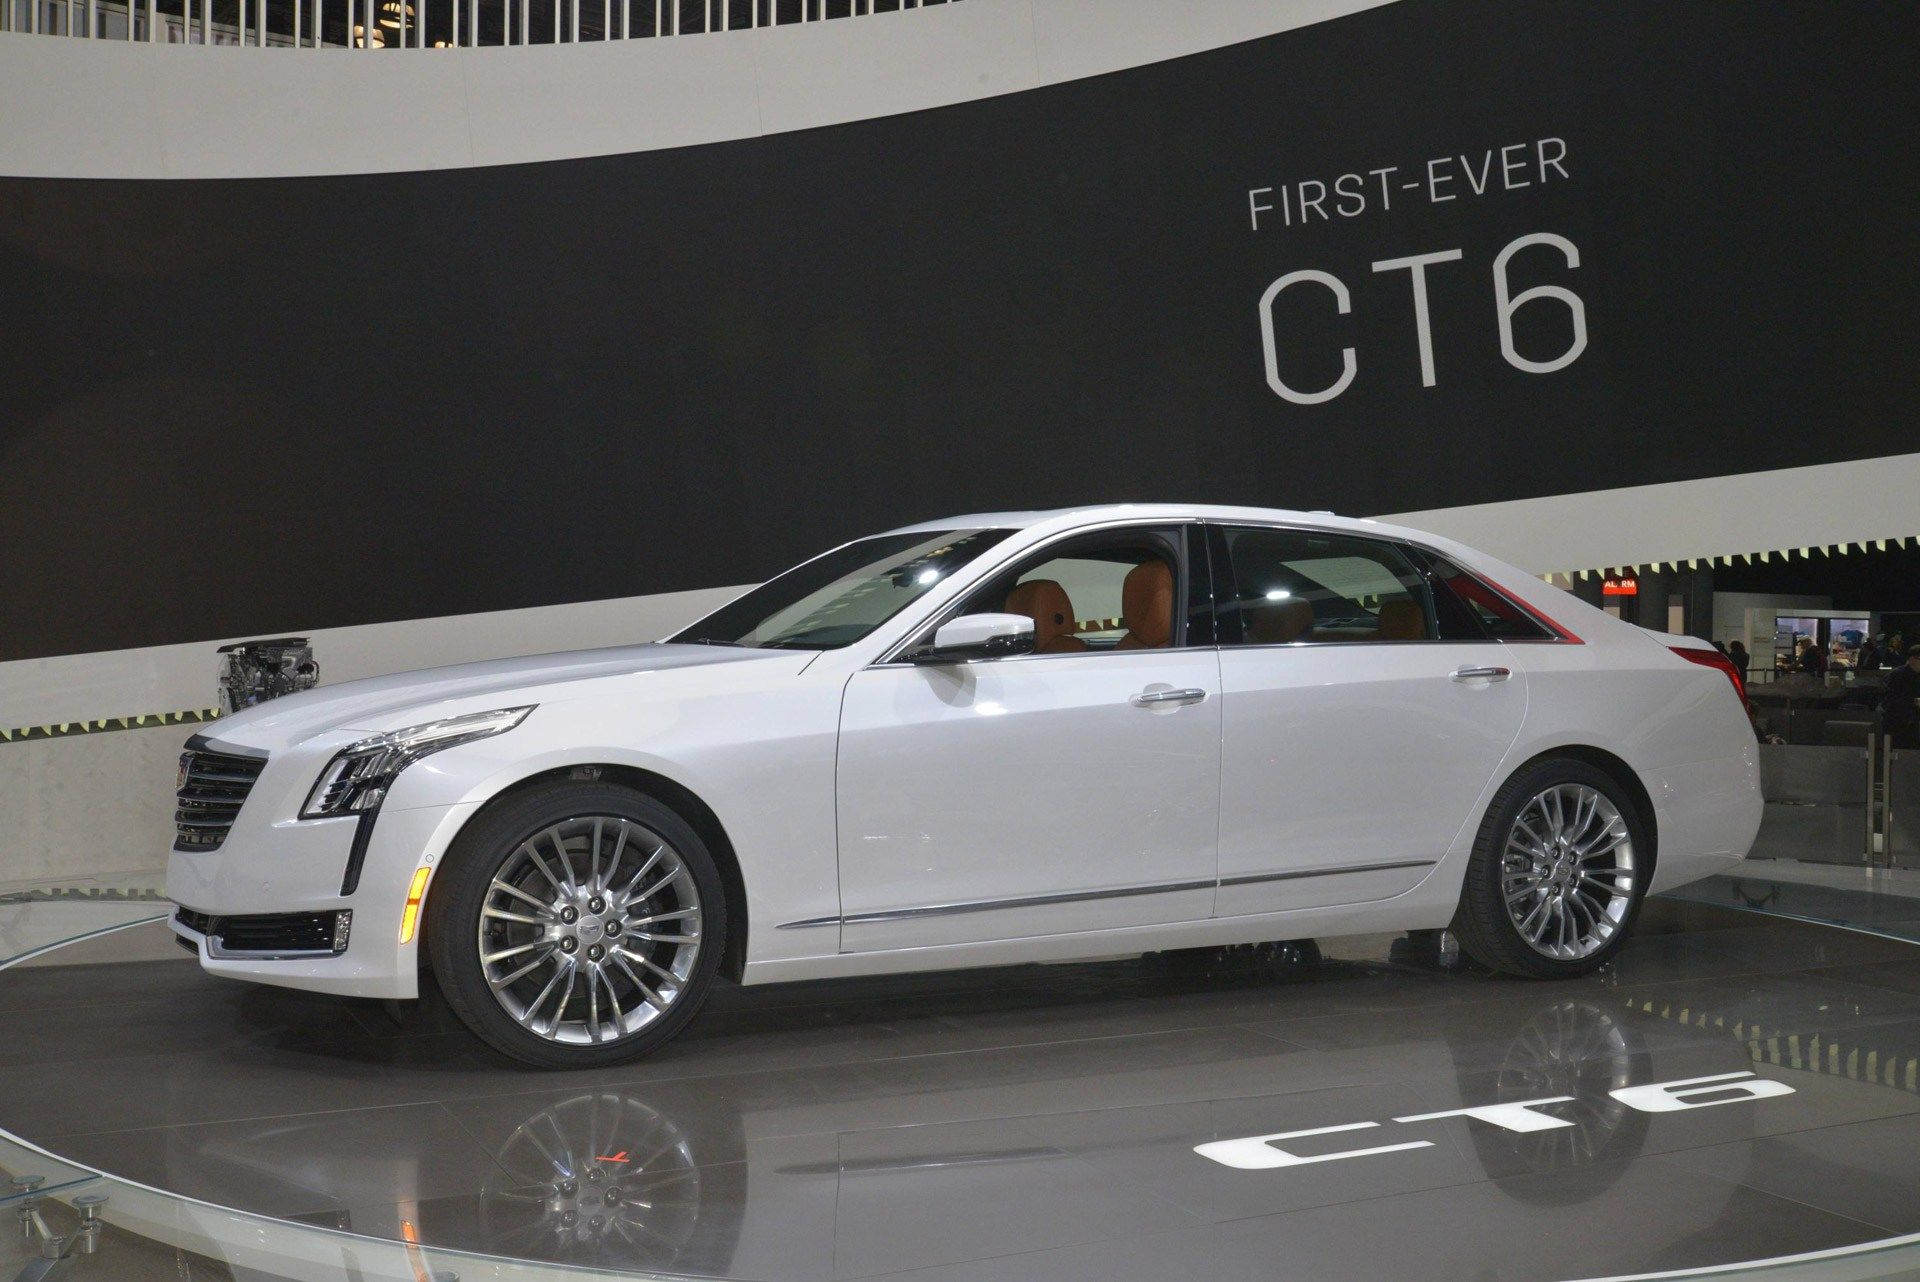 v now tuesday screen soon pm auto debut mph coming stream video show the detroit its cts watch shot price live made at cadillac